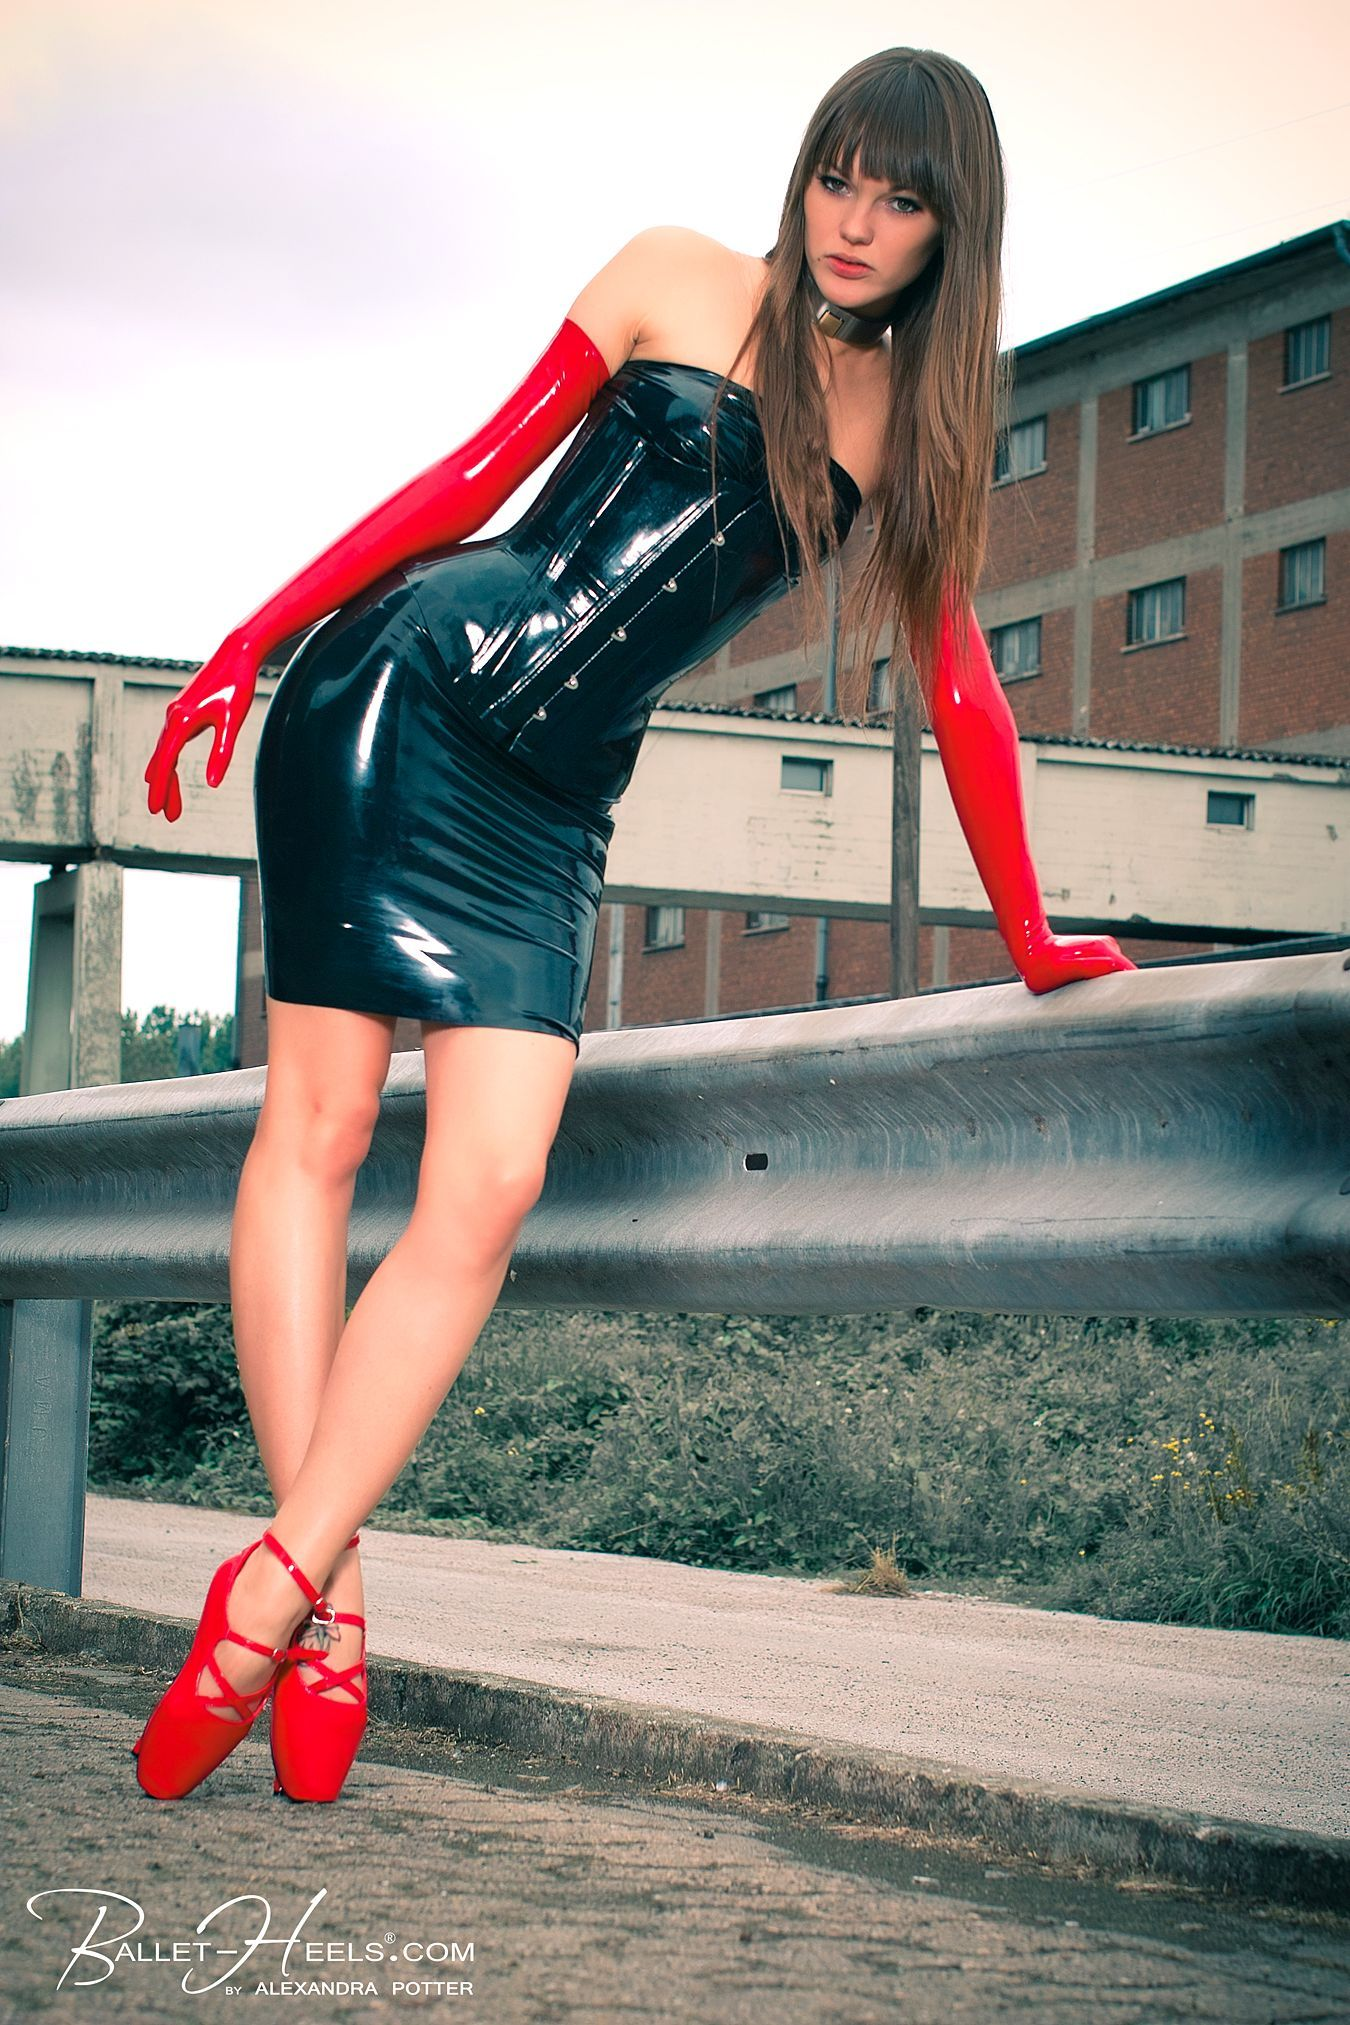 Latex Letter%0A Alexandra Potter  Ballet Heels  Fashion Models  Latex  Sexy Women  Pose   Curves  Platform  Models